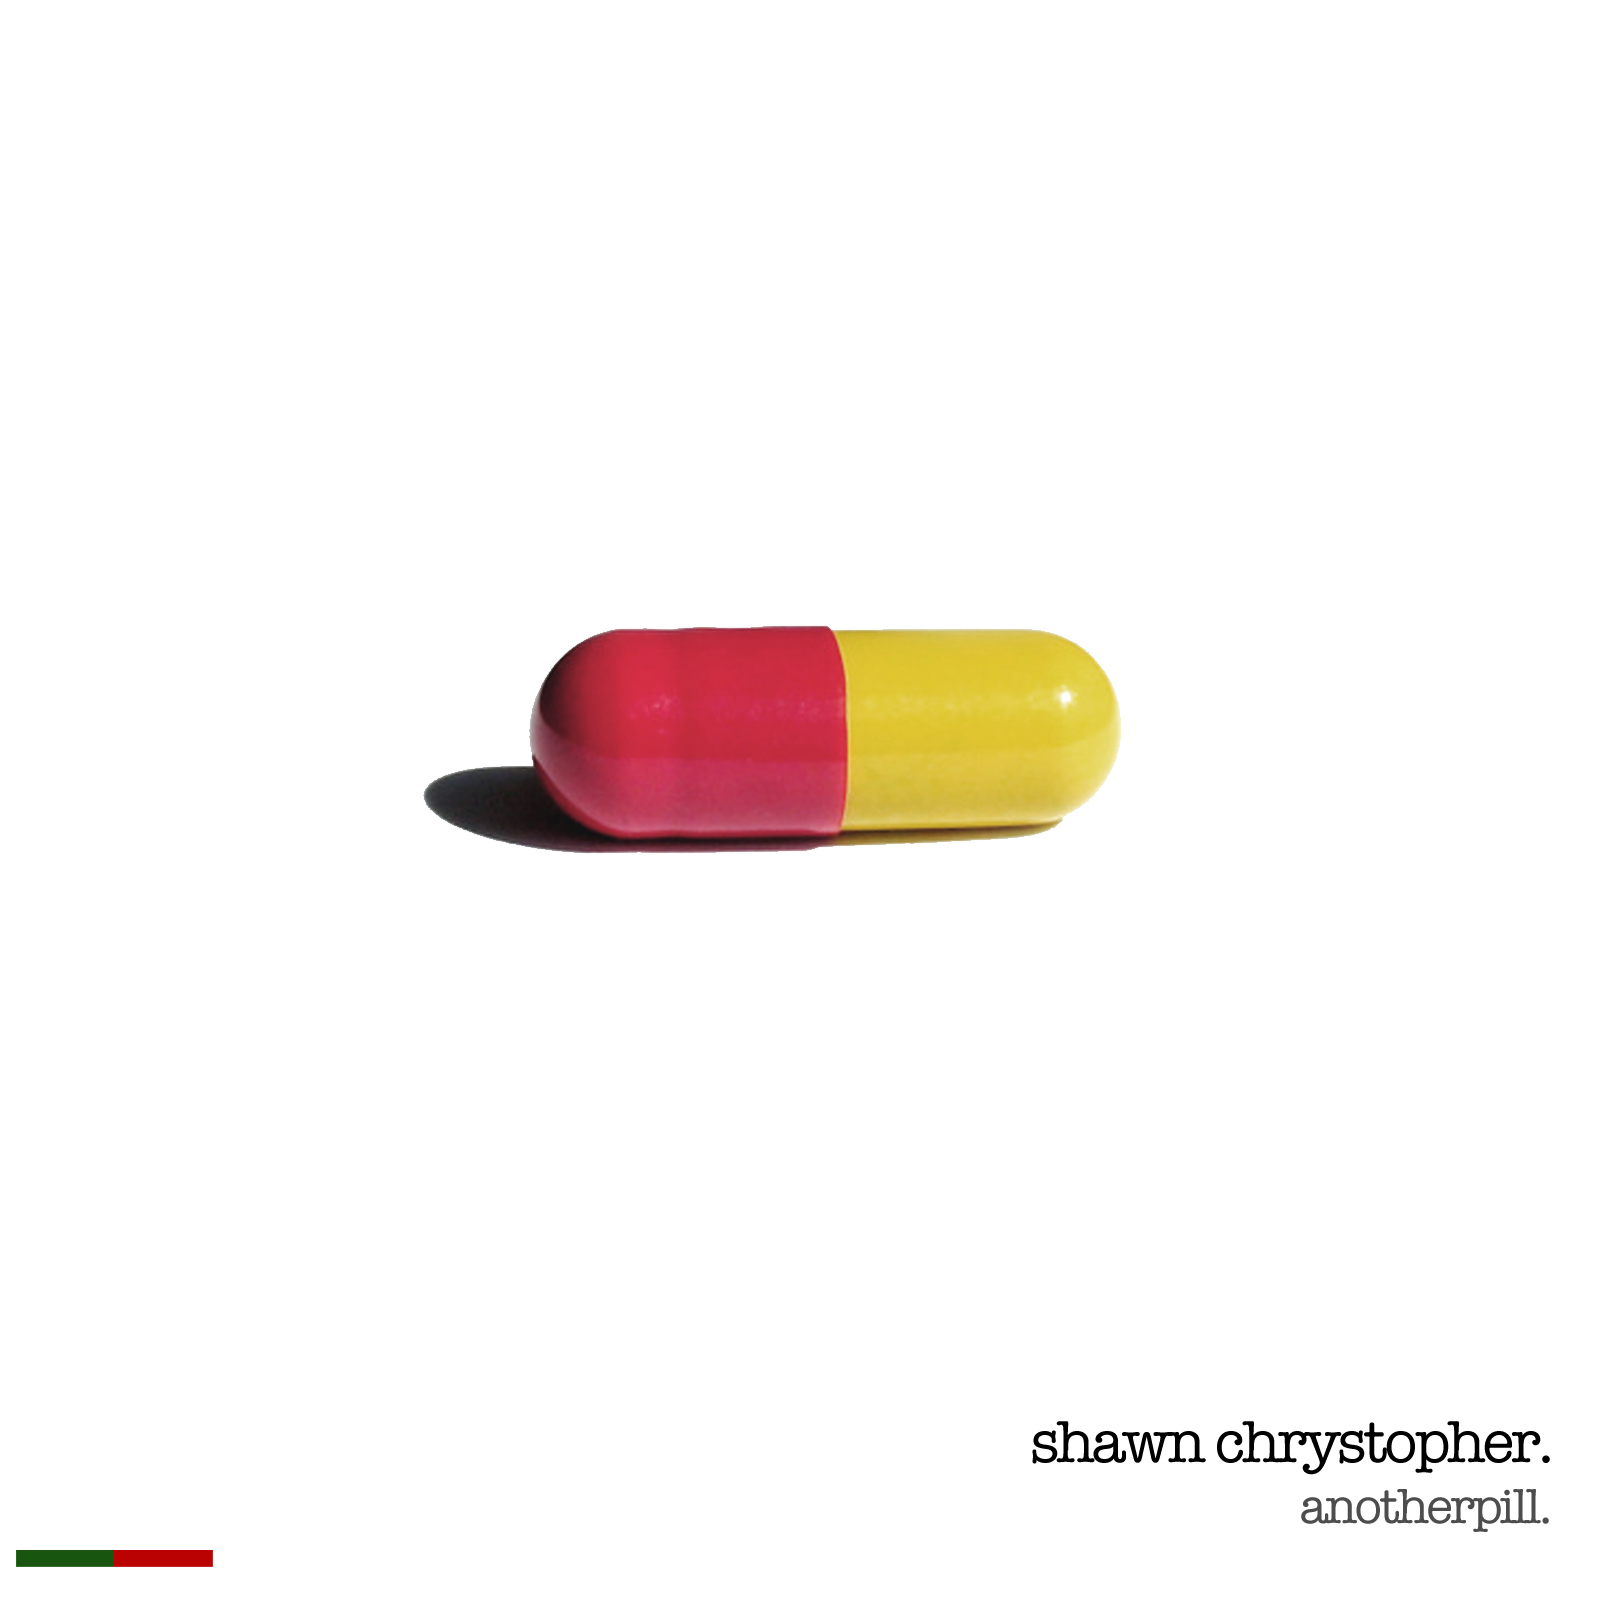 another pill shawn chrystopher